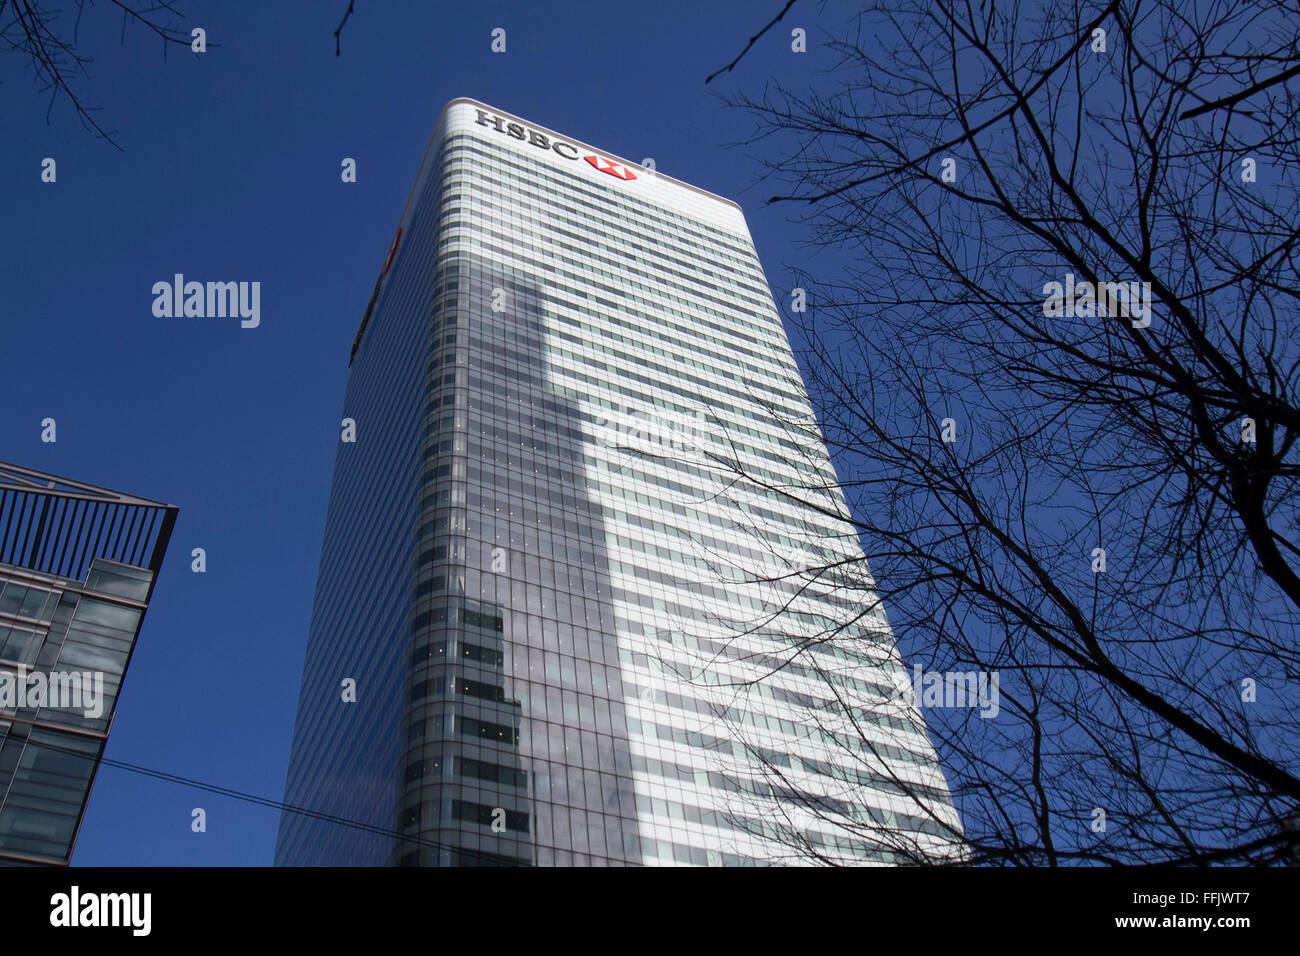 Hsbc Remains Stock Photos & Hsbc Remains Stock Images - Alamy